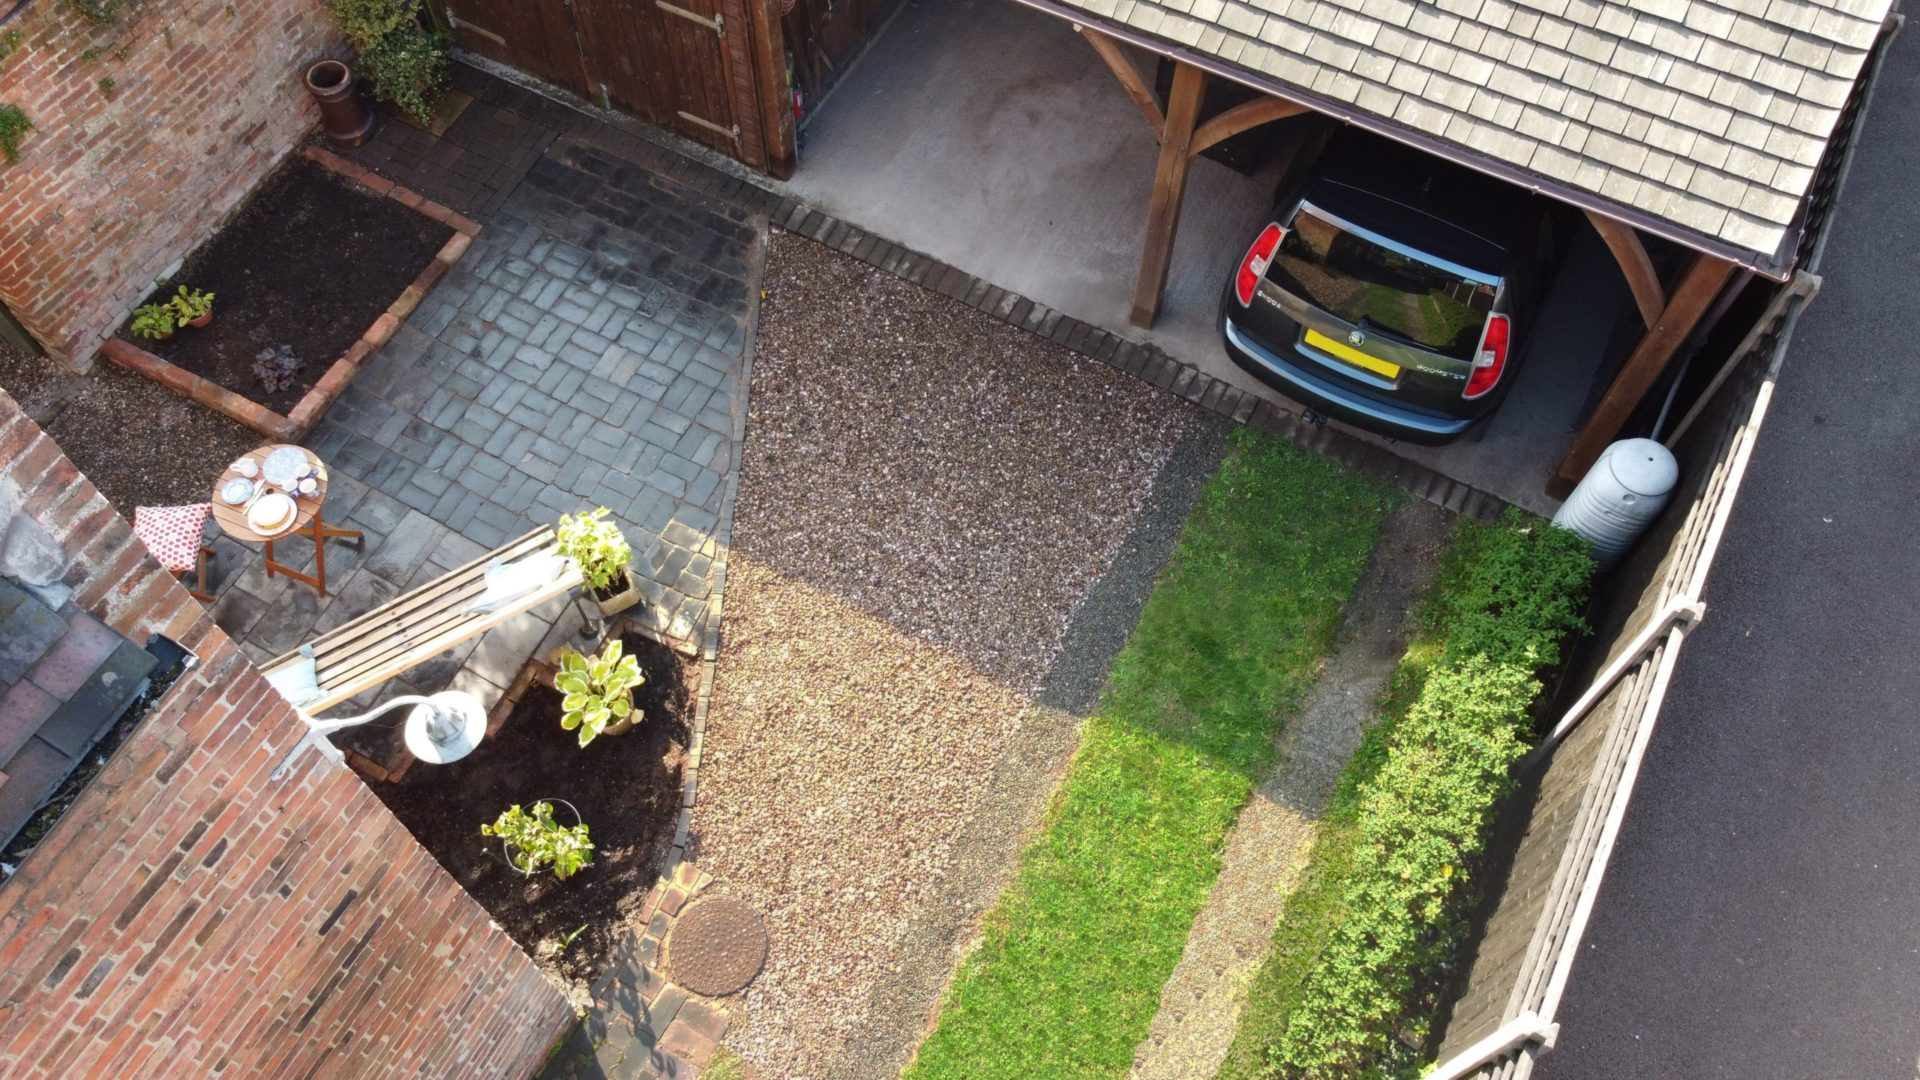 Our grass driveway grid allows grass to maintain a healthy appearance